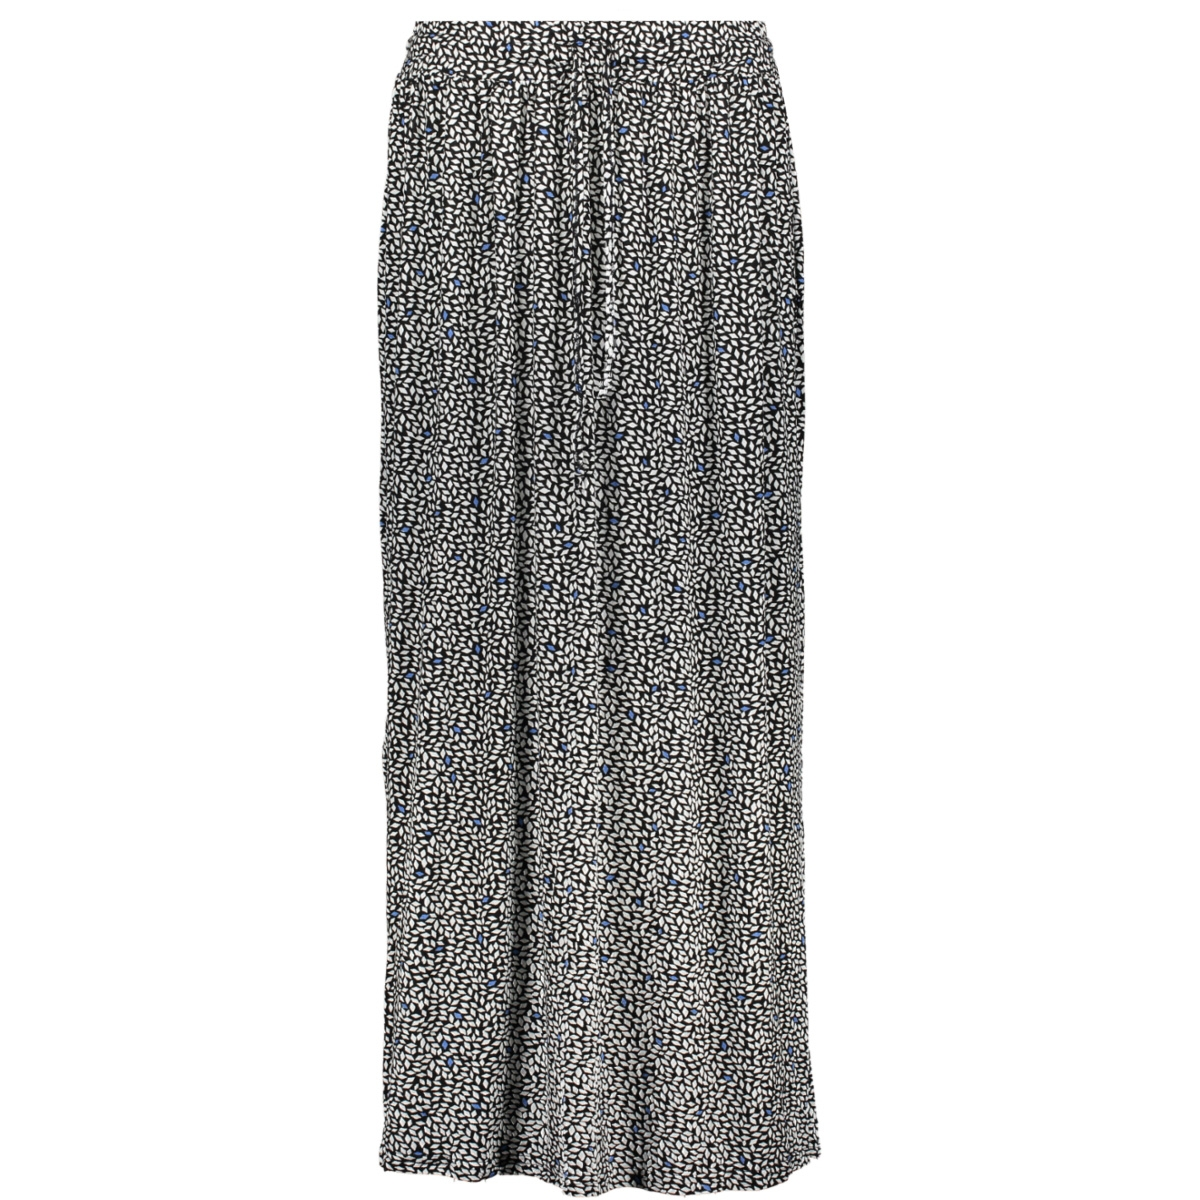 vmlizzy ancle skirt jrs 10213953 vero moda rok night sky/tyra night